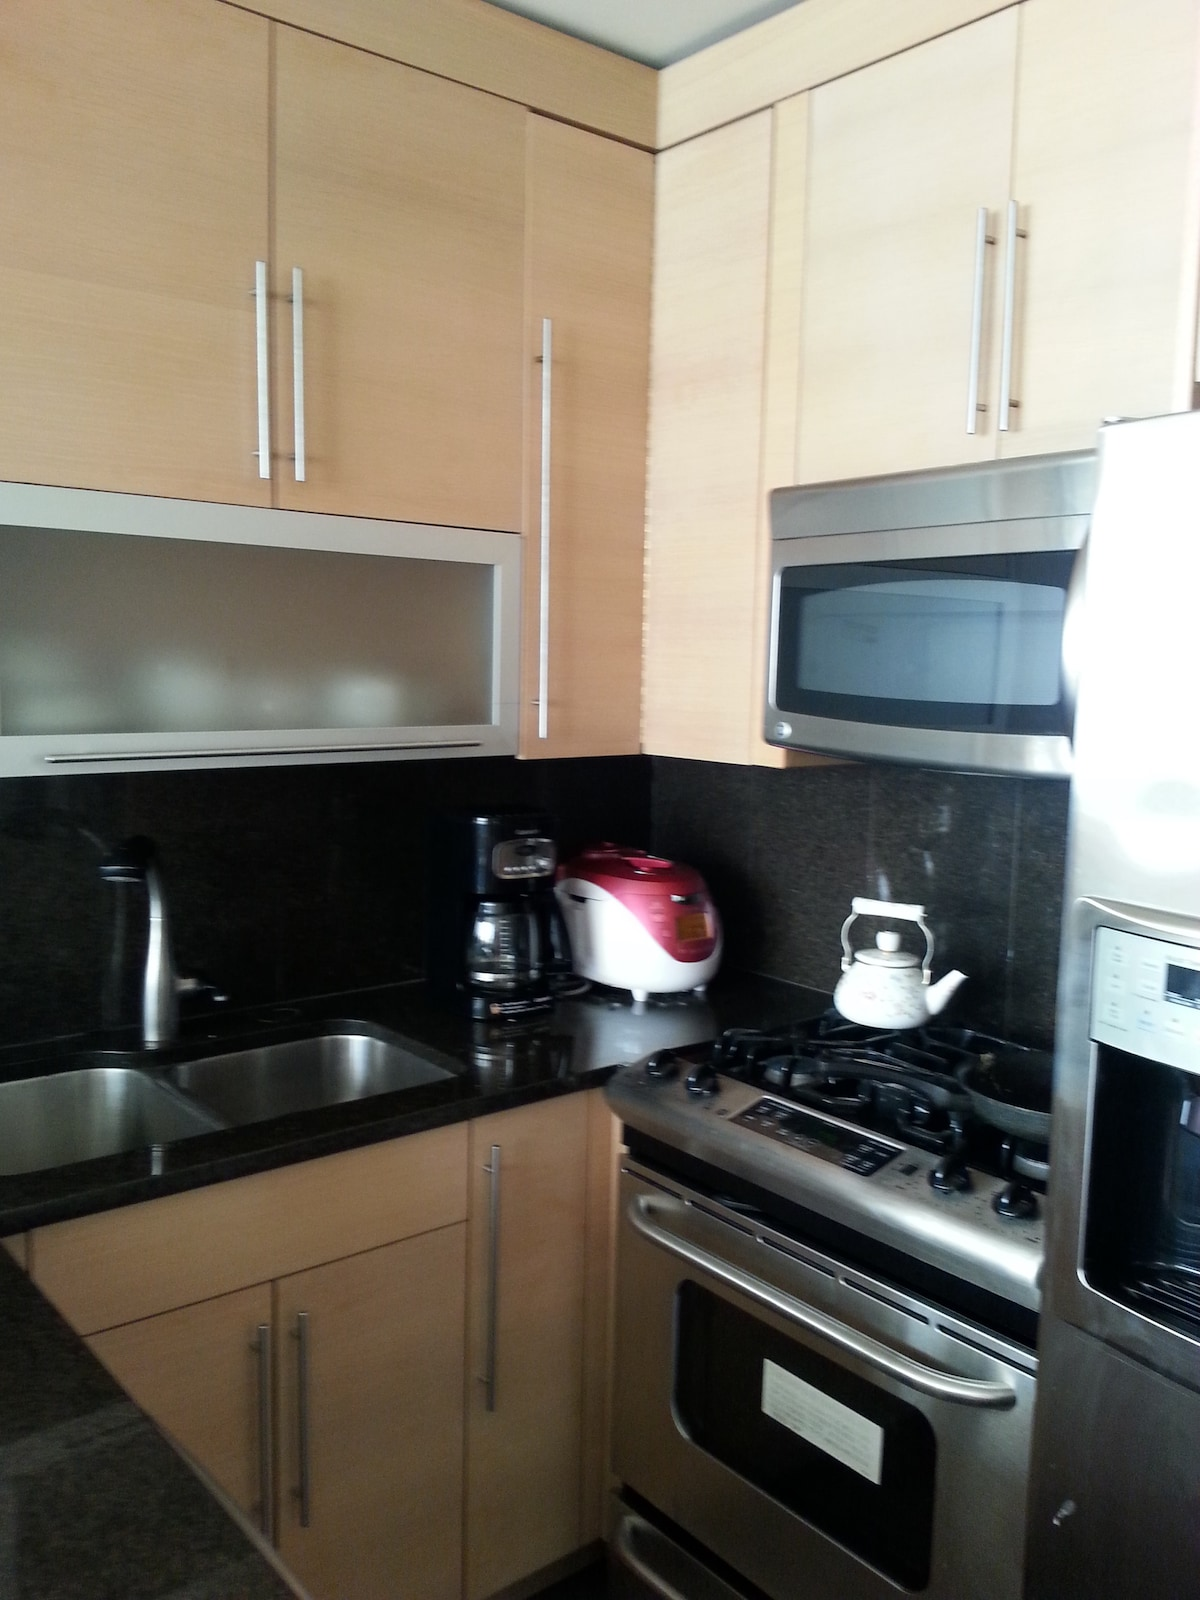 1 Bed with Full Bath in 2 Bed Apt.